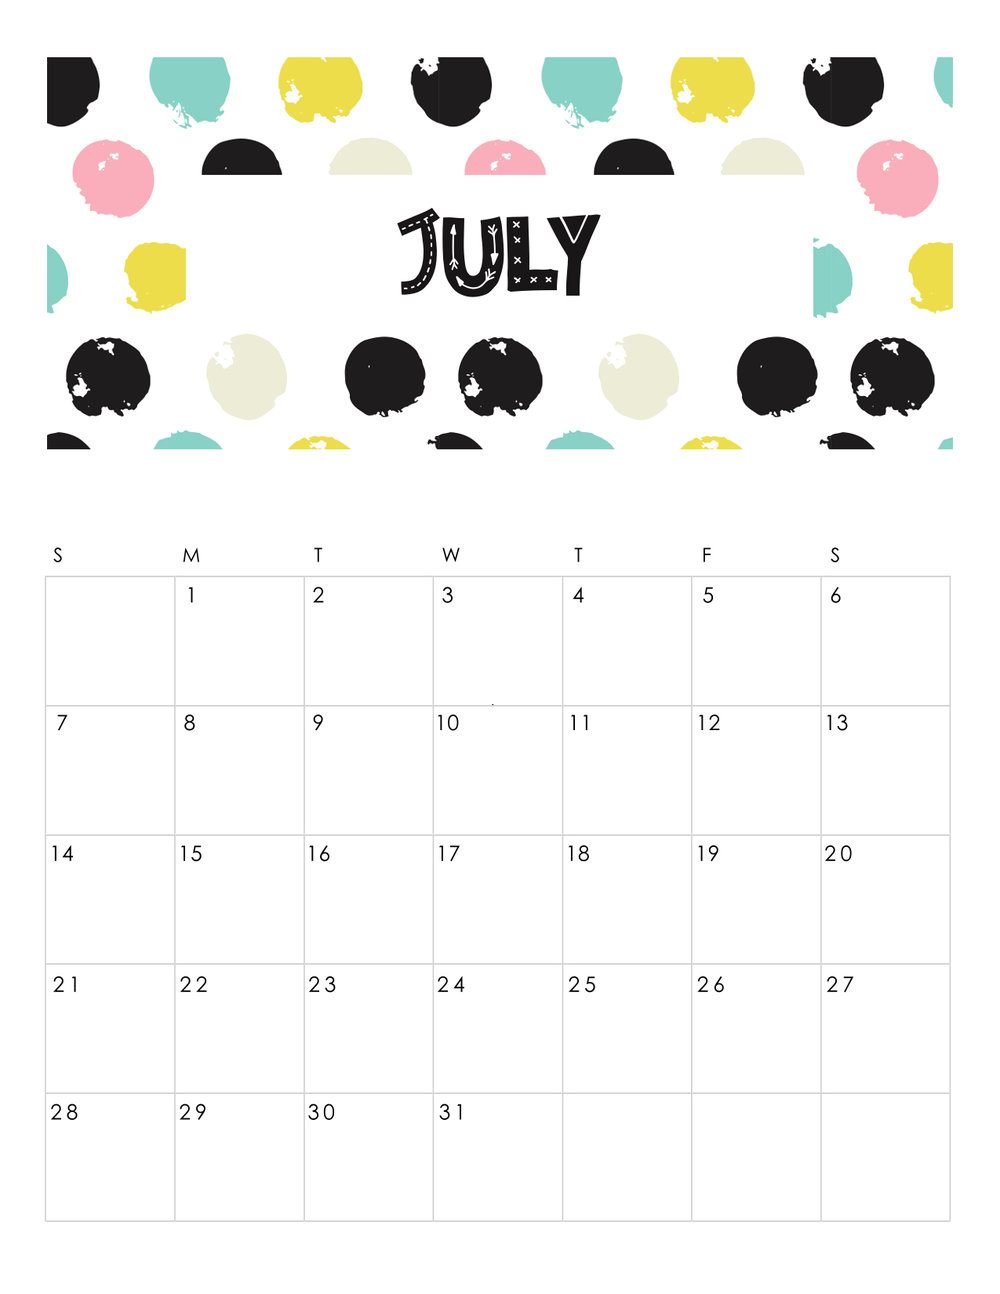 free-printable-abstract-patterned-calendar-2019-july.jpg